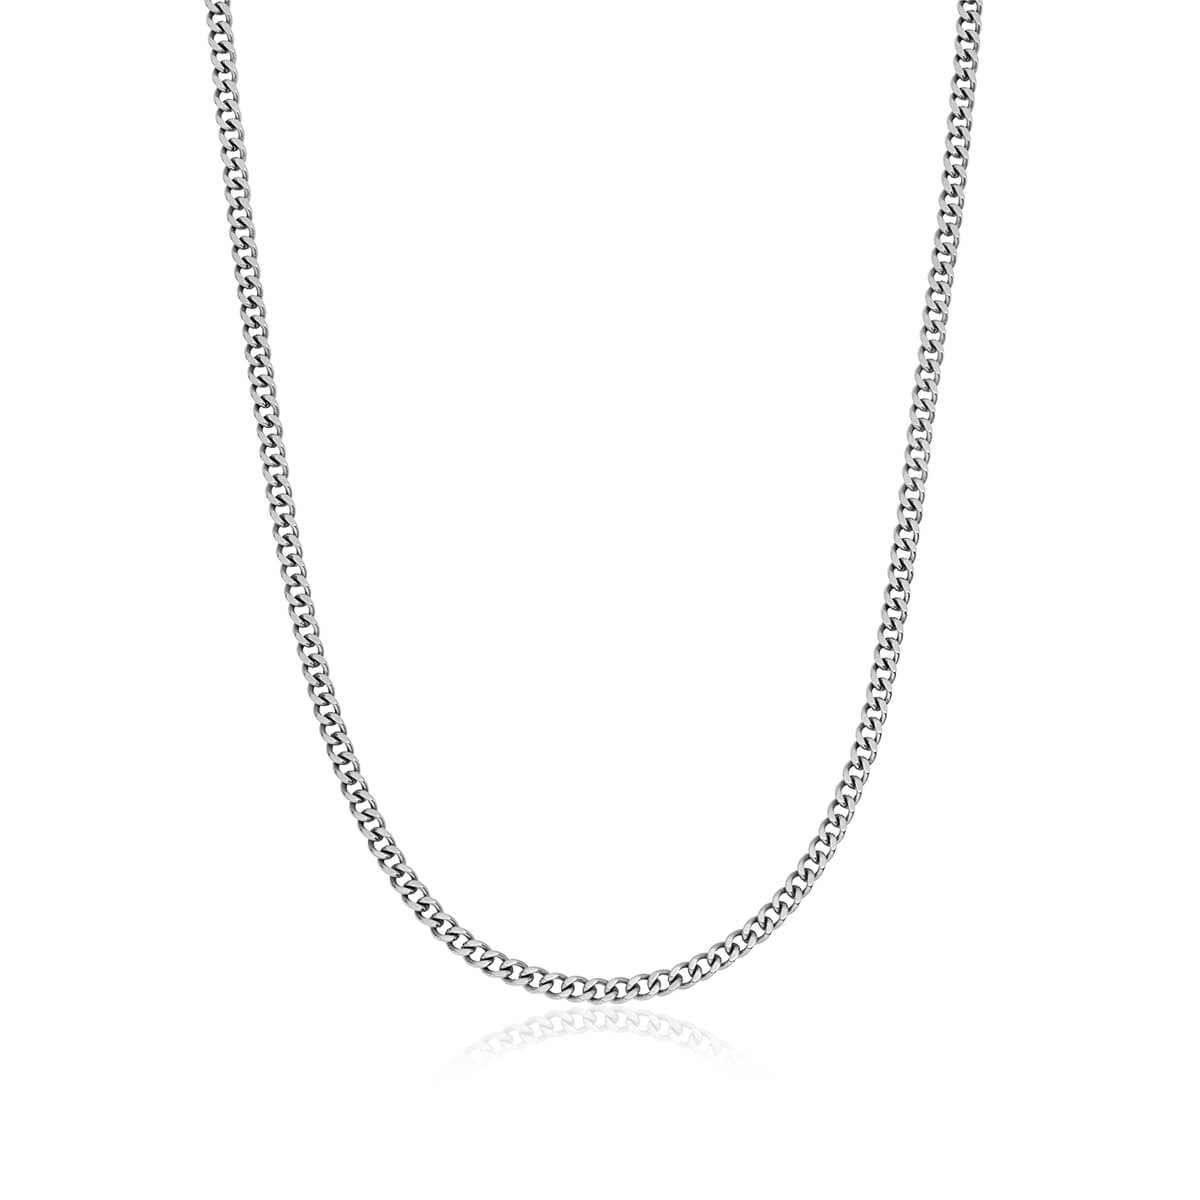 Small Curb Chain Necklace (Silver)